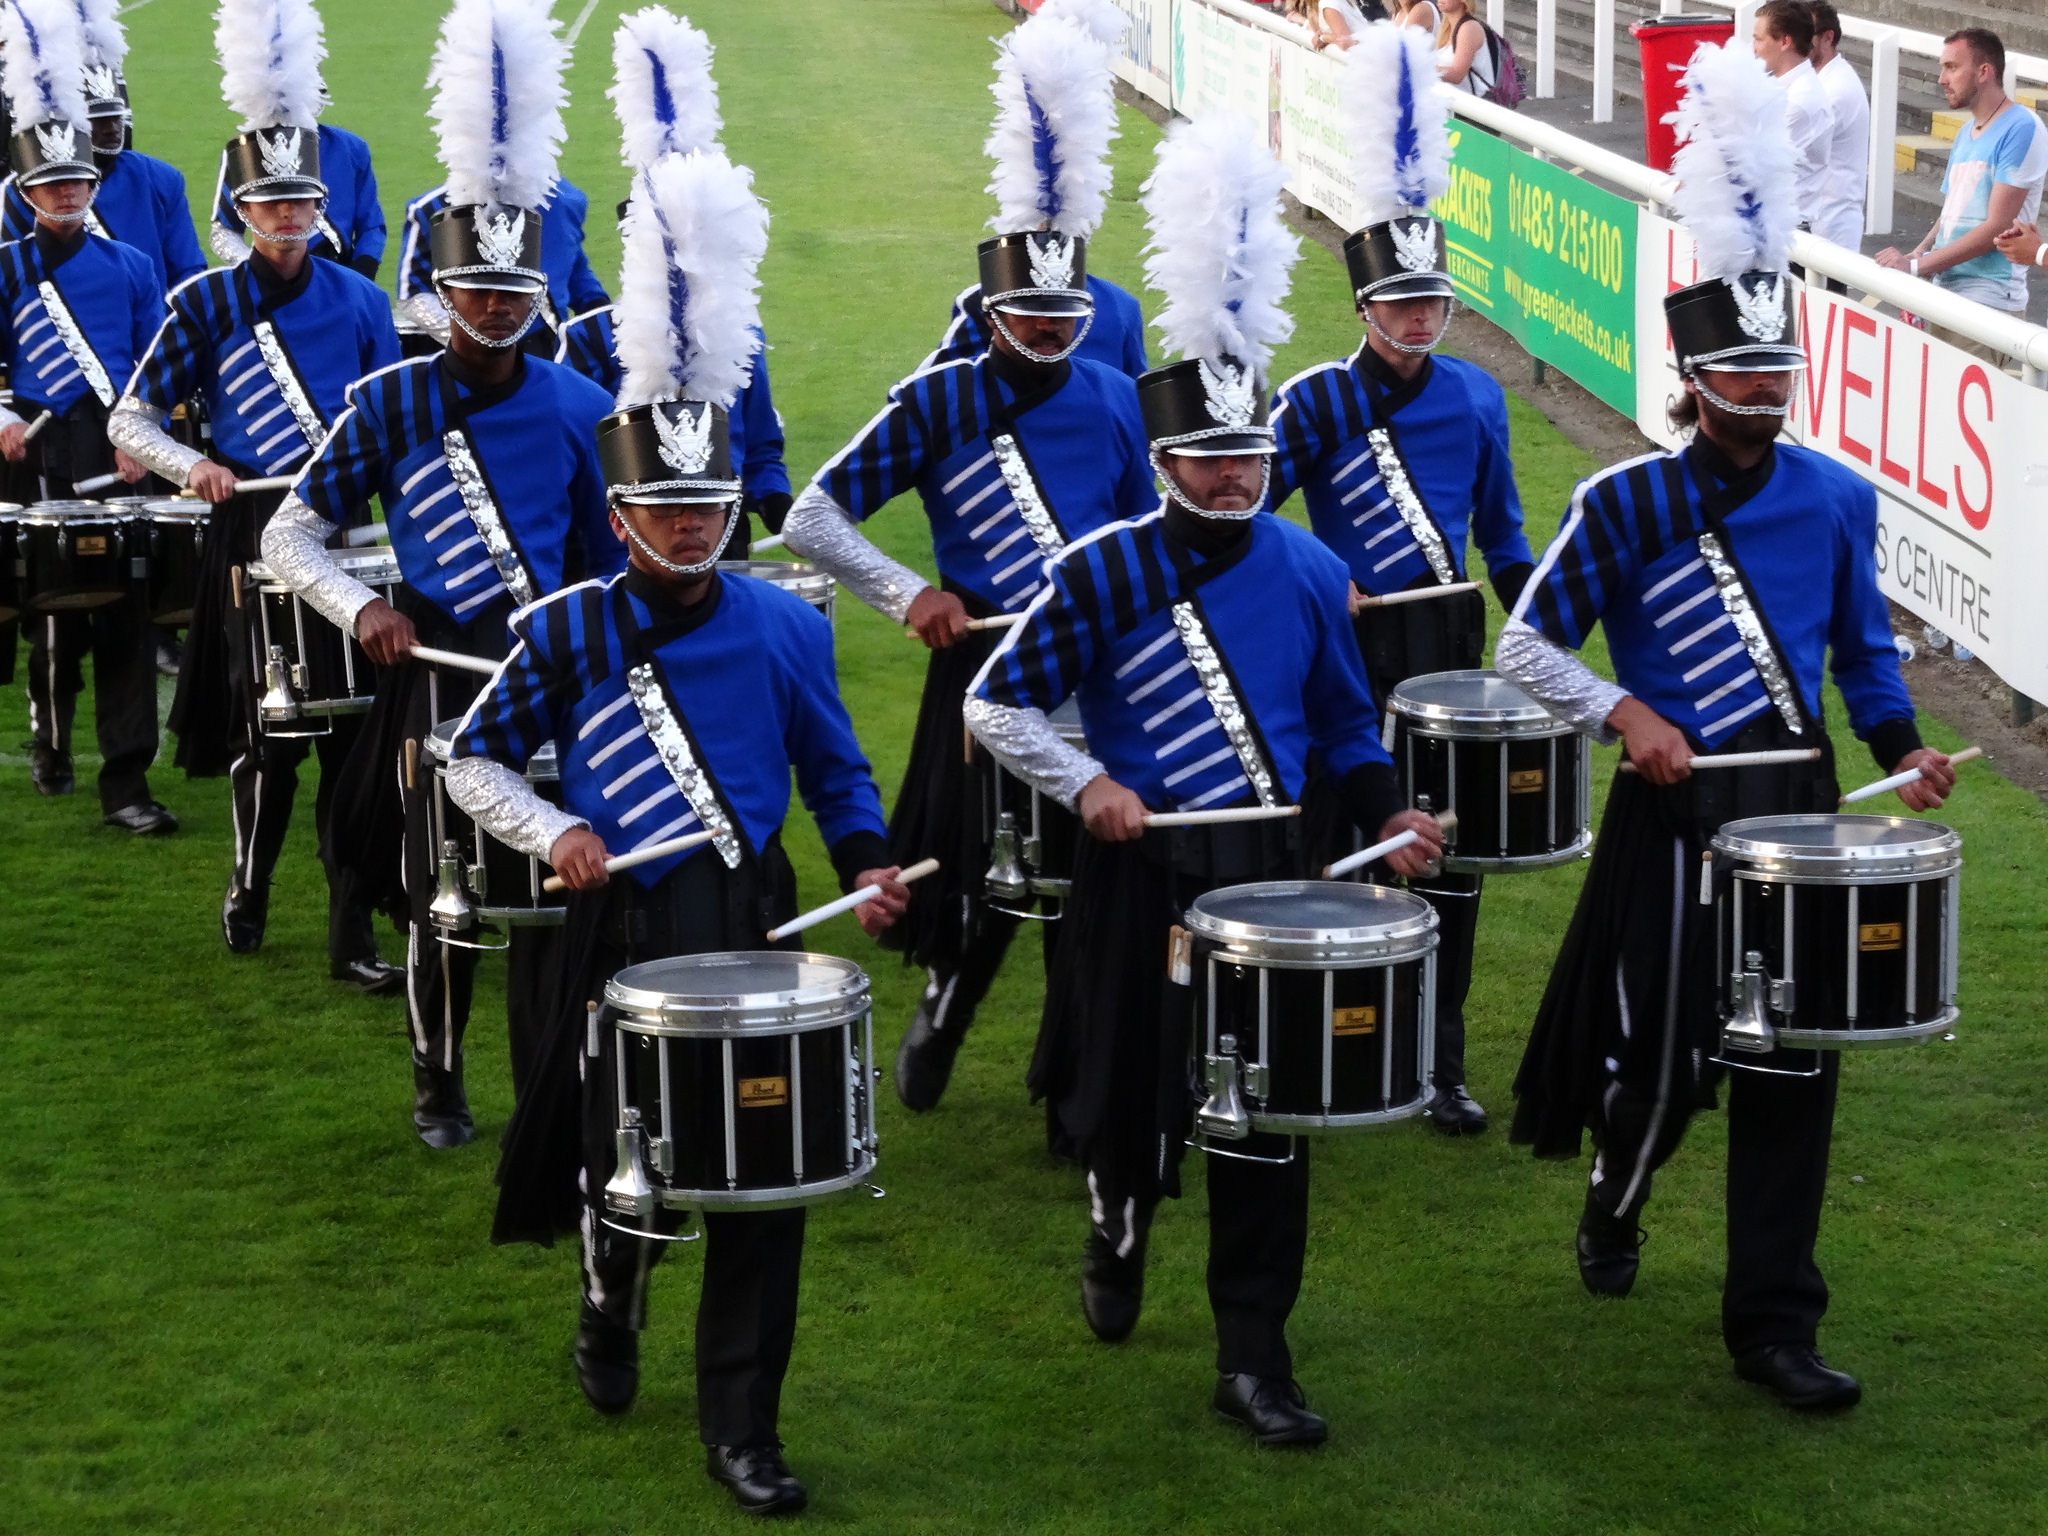 header_whenthesedrummers.jpg